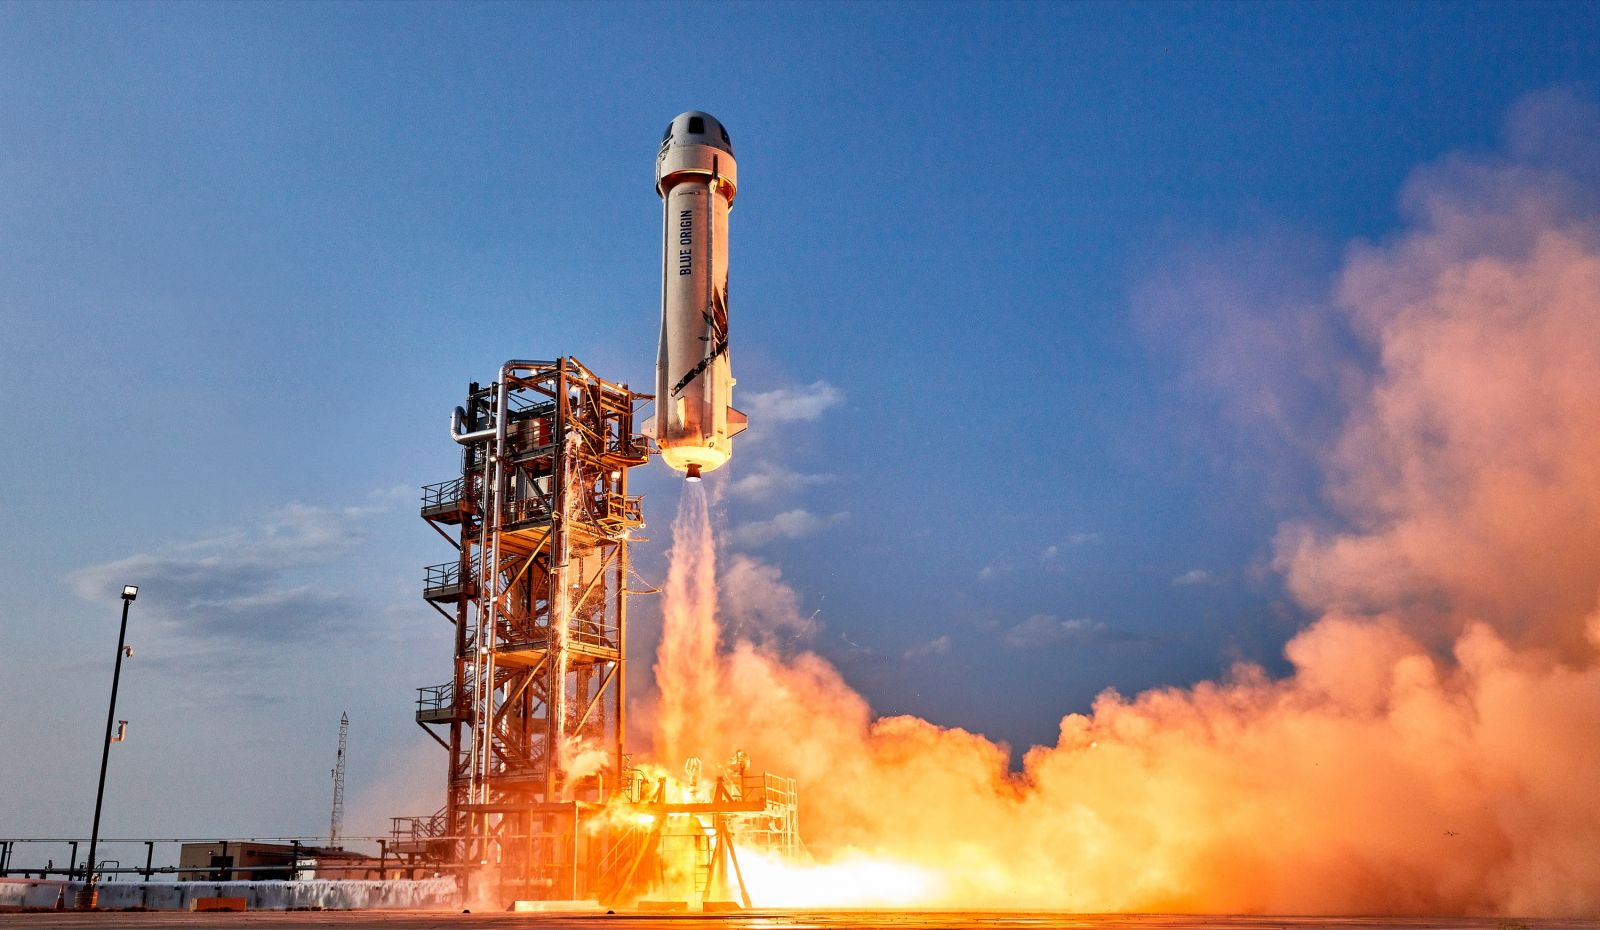 A file photo of the previous New Shepard flight in July. Credit: Blue Origin